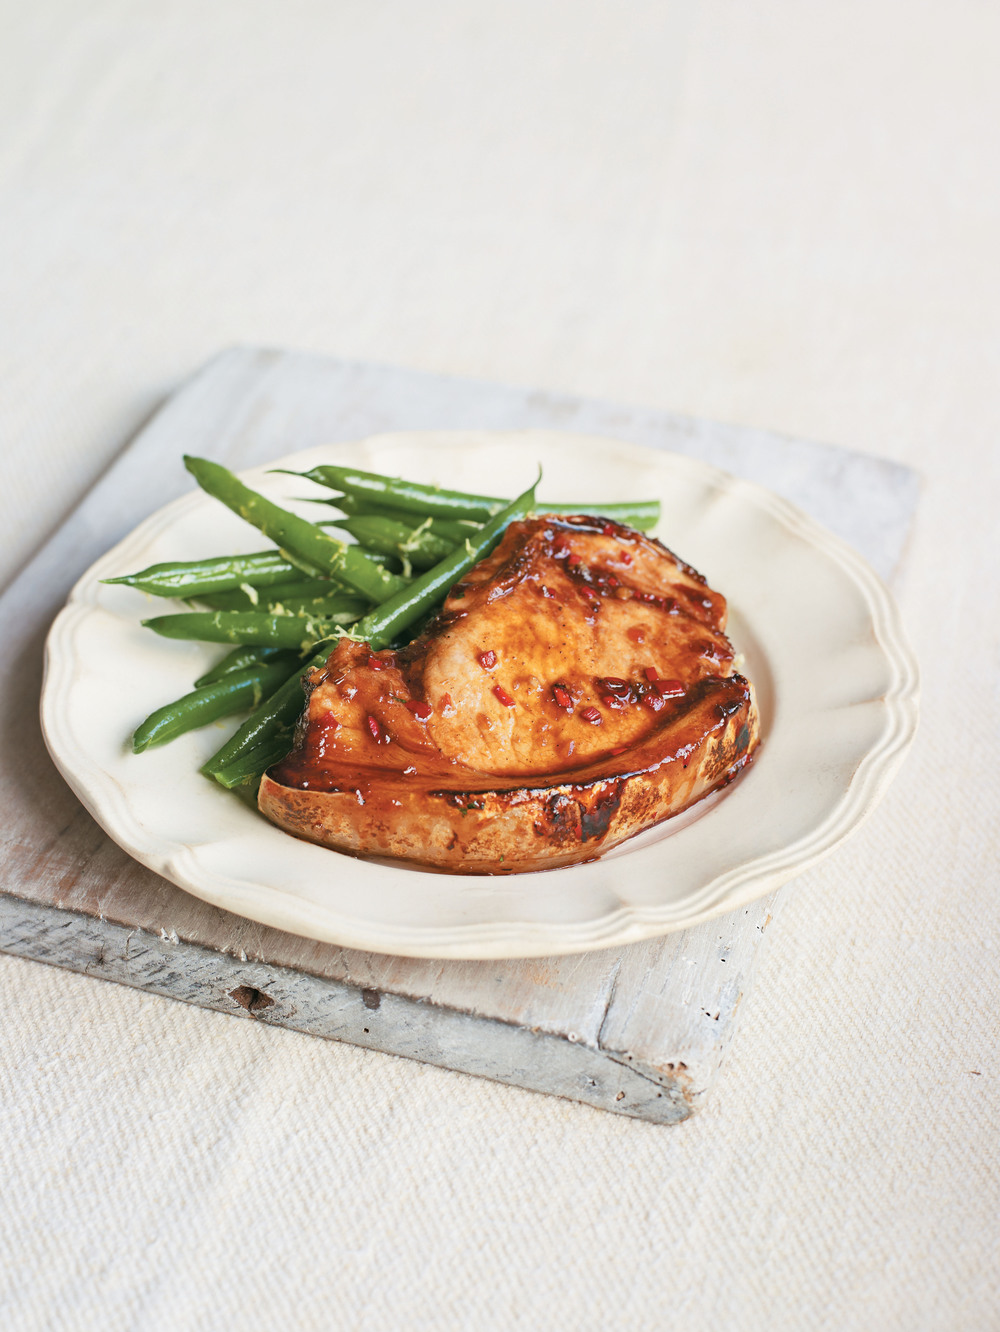 Five-Spice Pork Chops with Green Beans - Aol UK | Food